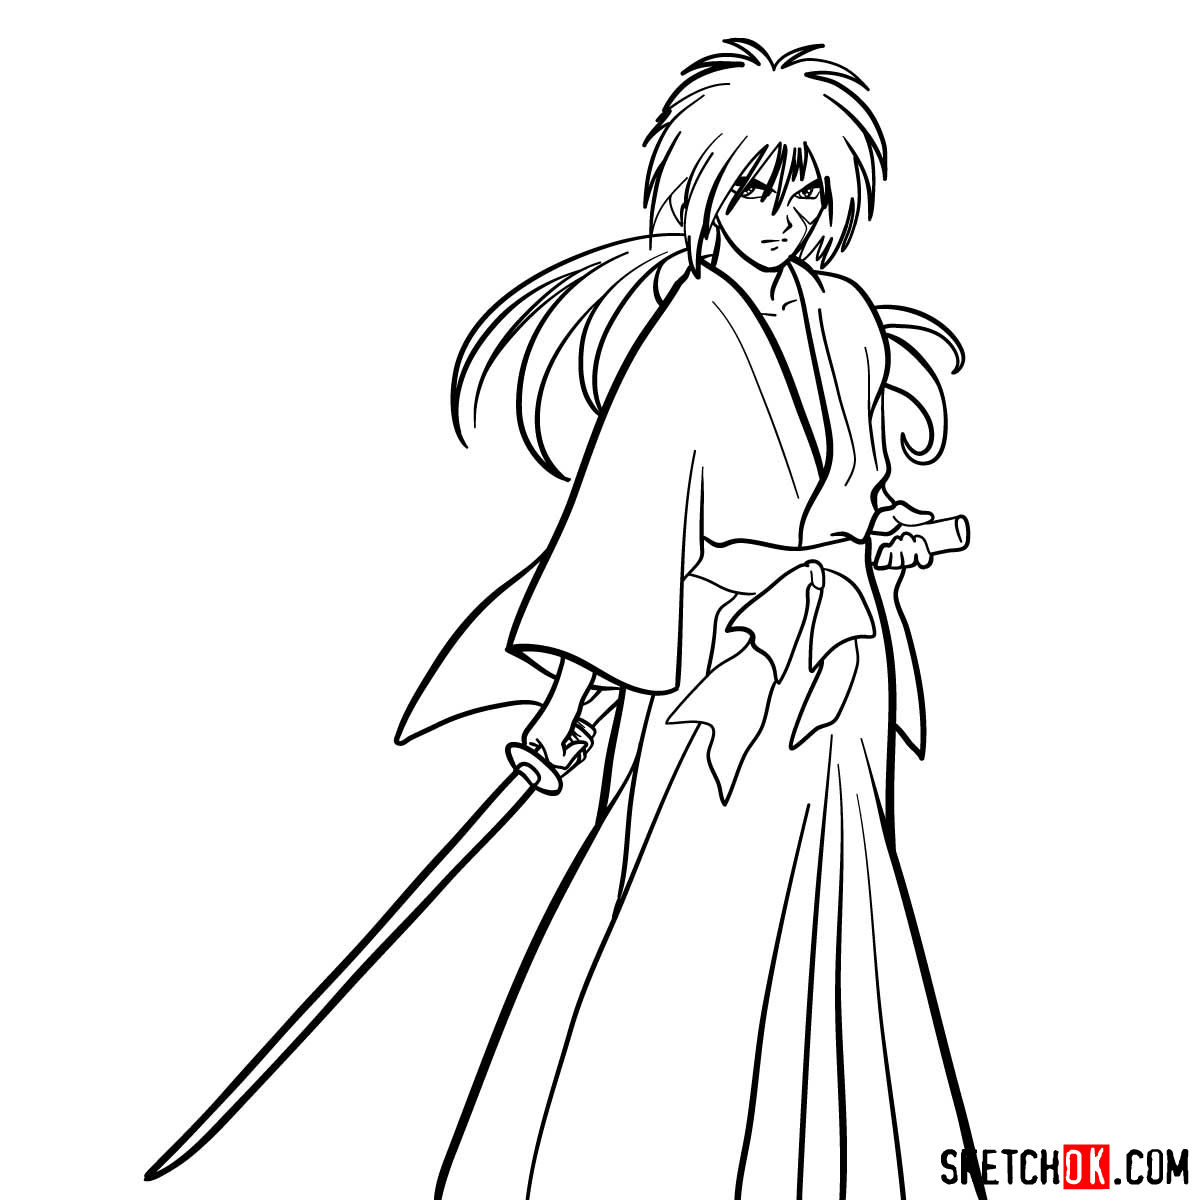 How to draw Himura Kenshin | Rurouni Kenshin